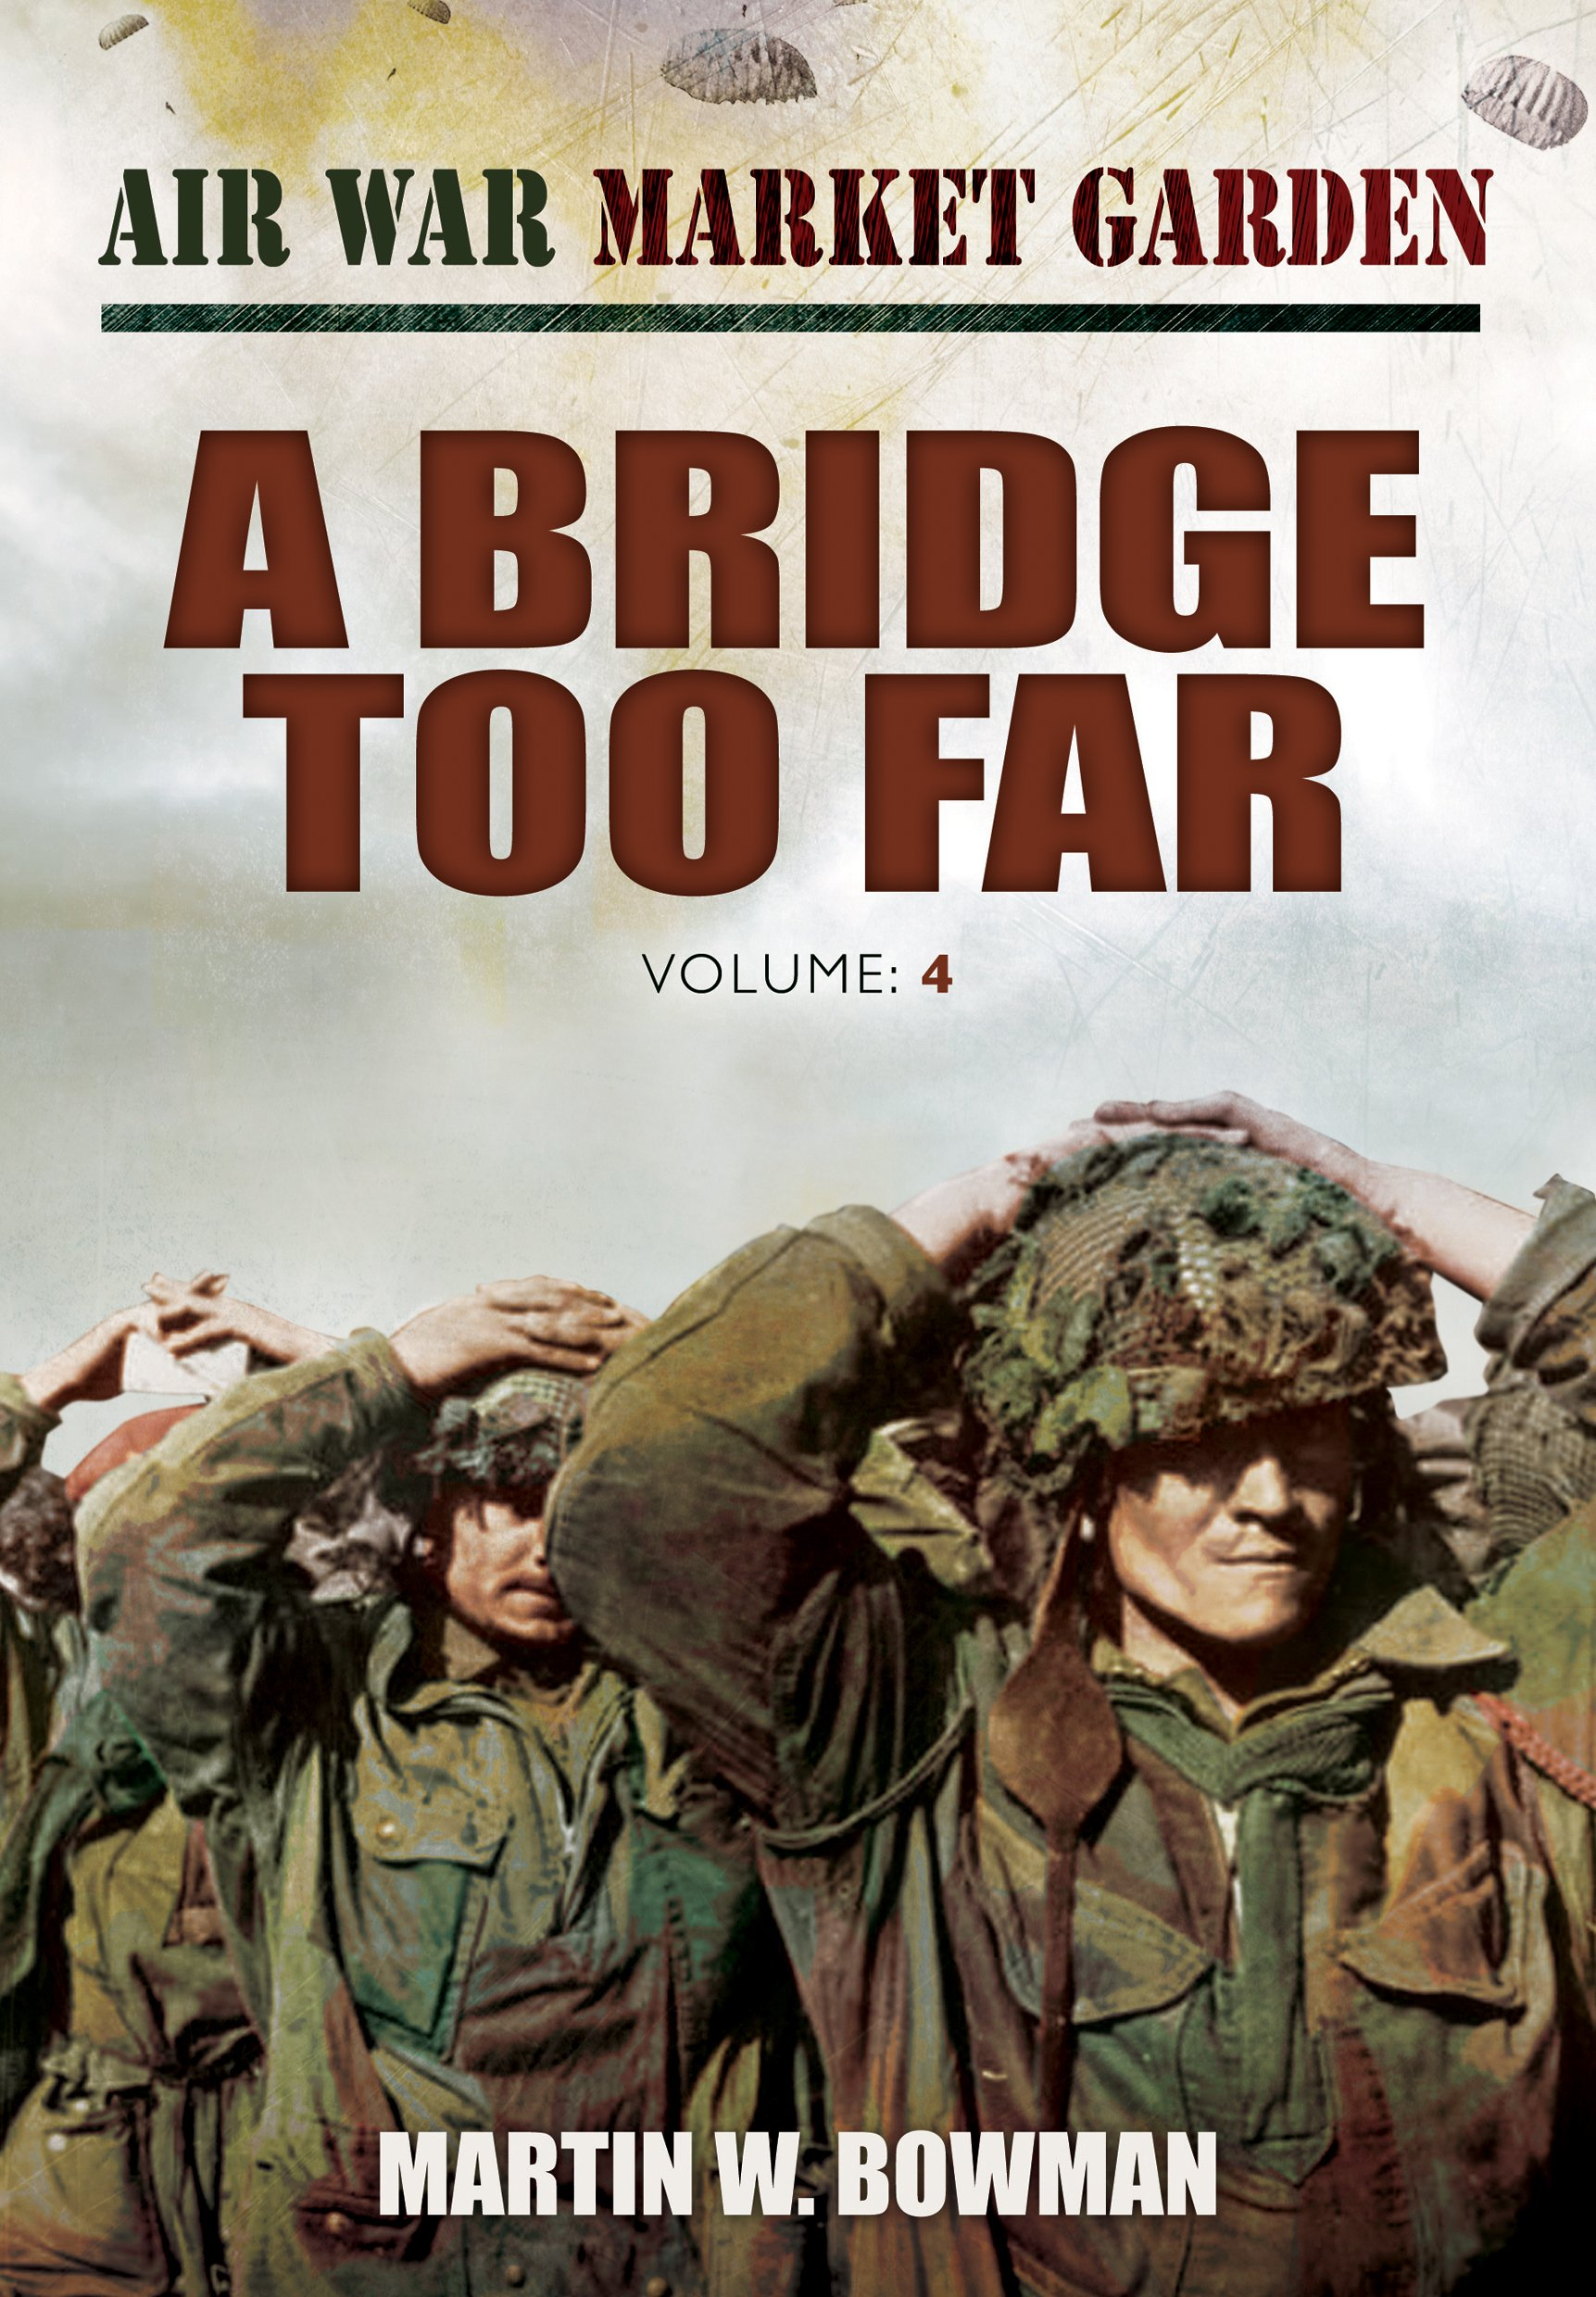 Air War Market Garden: A Bridge Too Far: Martin W. Bowman ...